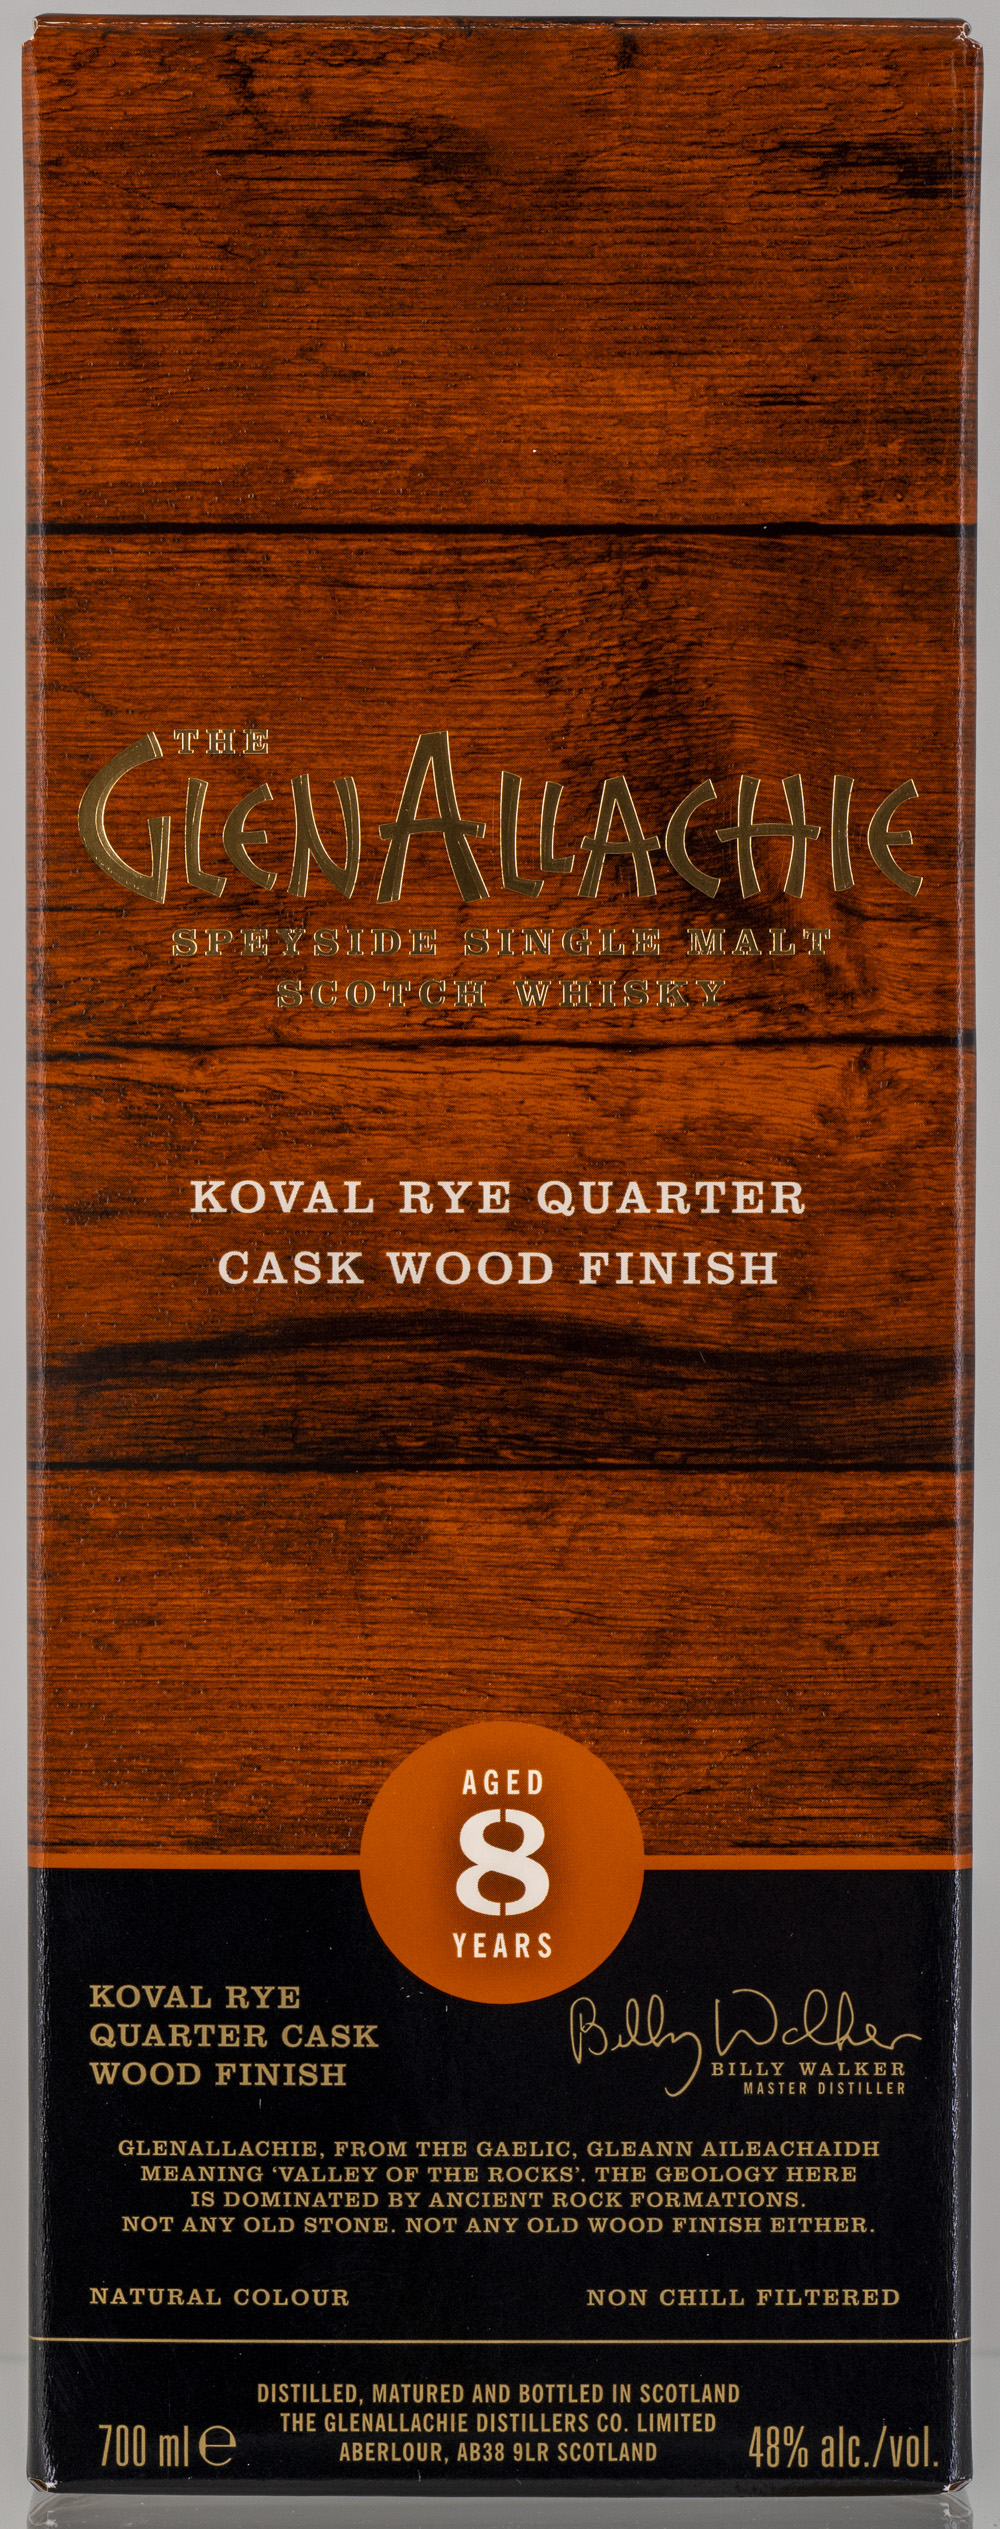 Billede: PHC_2274 - GelAllachie 8 Koval Rye Quarter Cask Wood Finish - box front.jpg